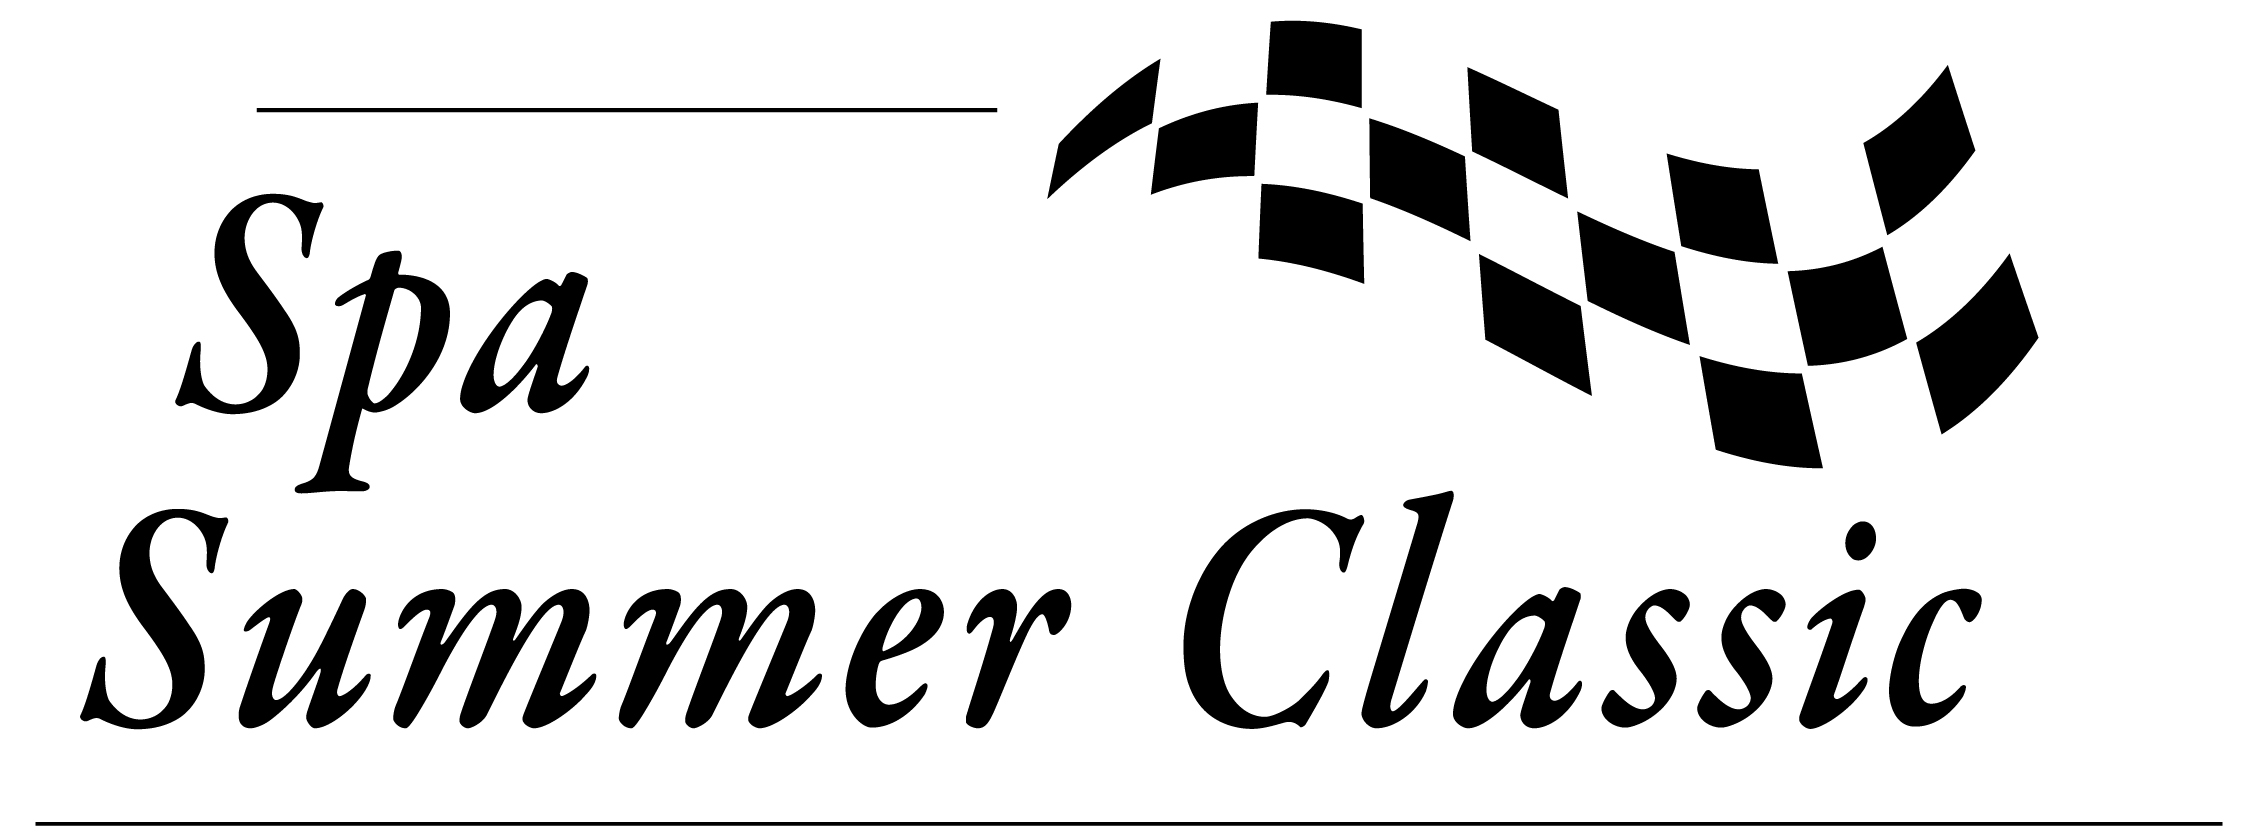 Spa Summer classic 2012